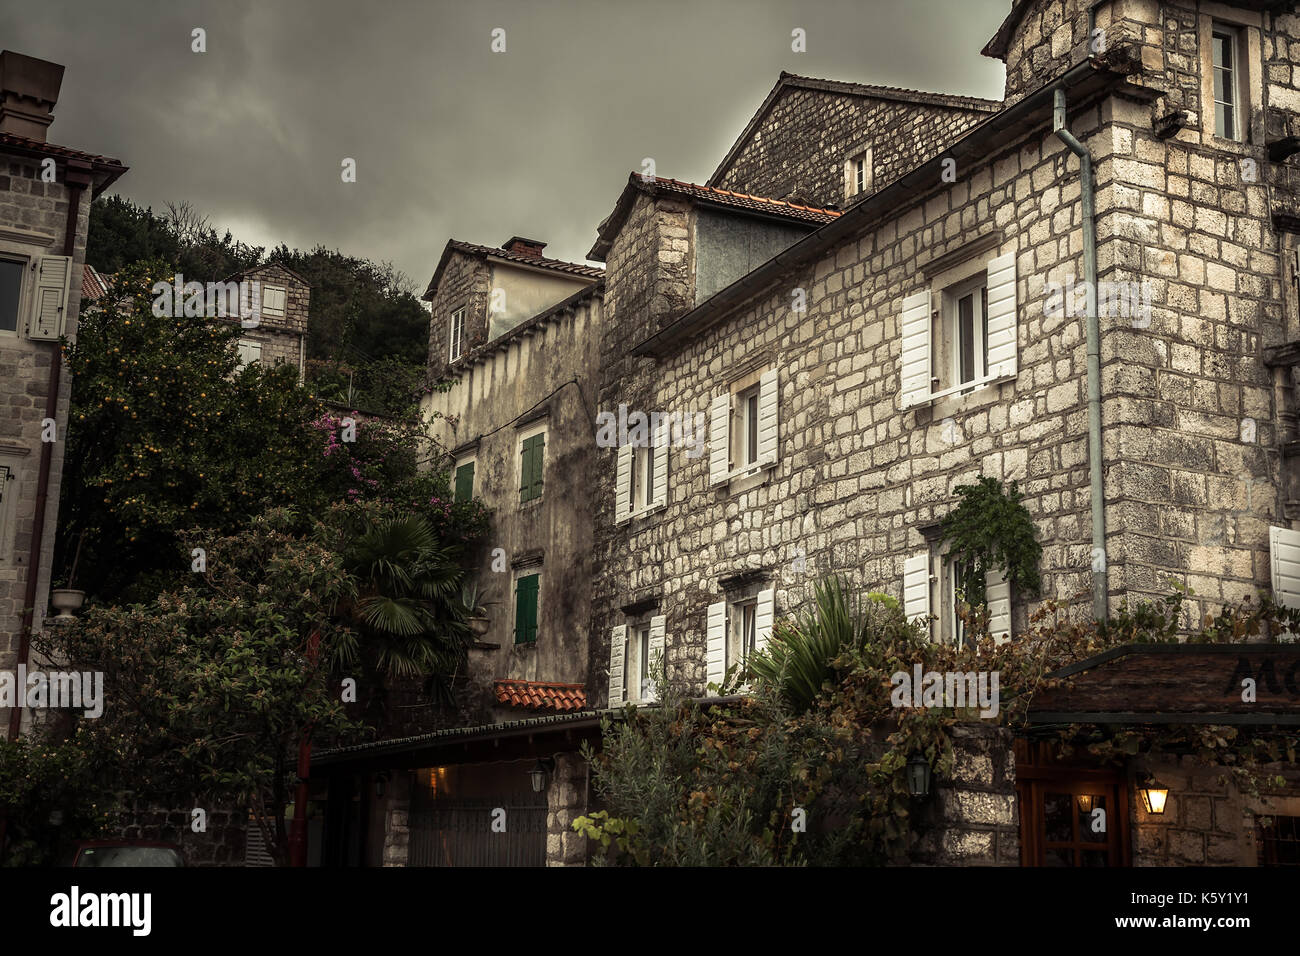 Vintage medieval city street with stone building exterior in overcast day during raining autumn season in old European city Perast with medieval archi - Stock Image